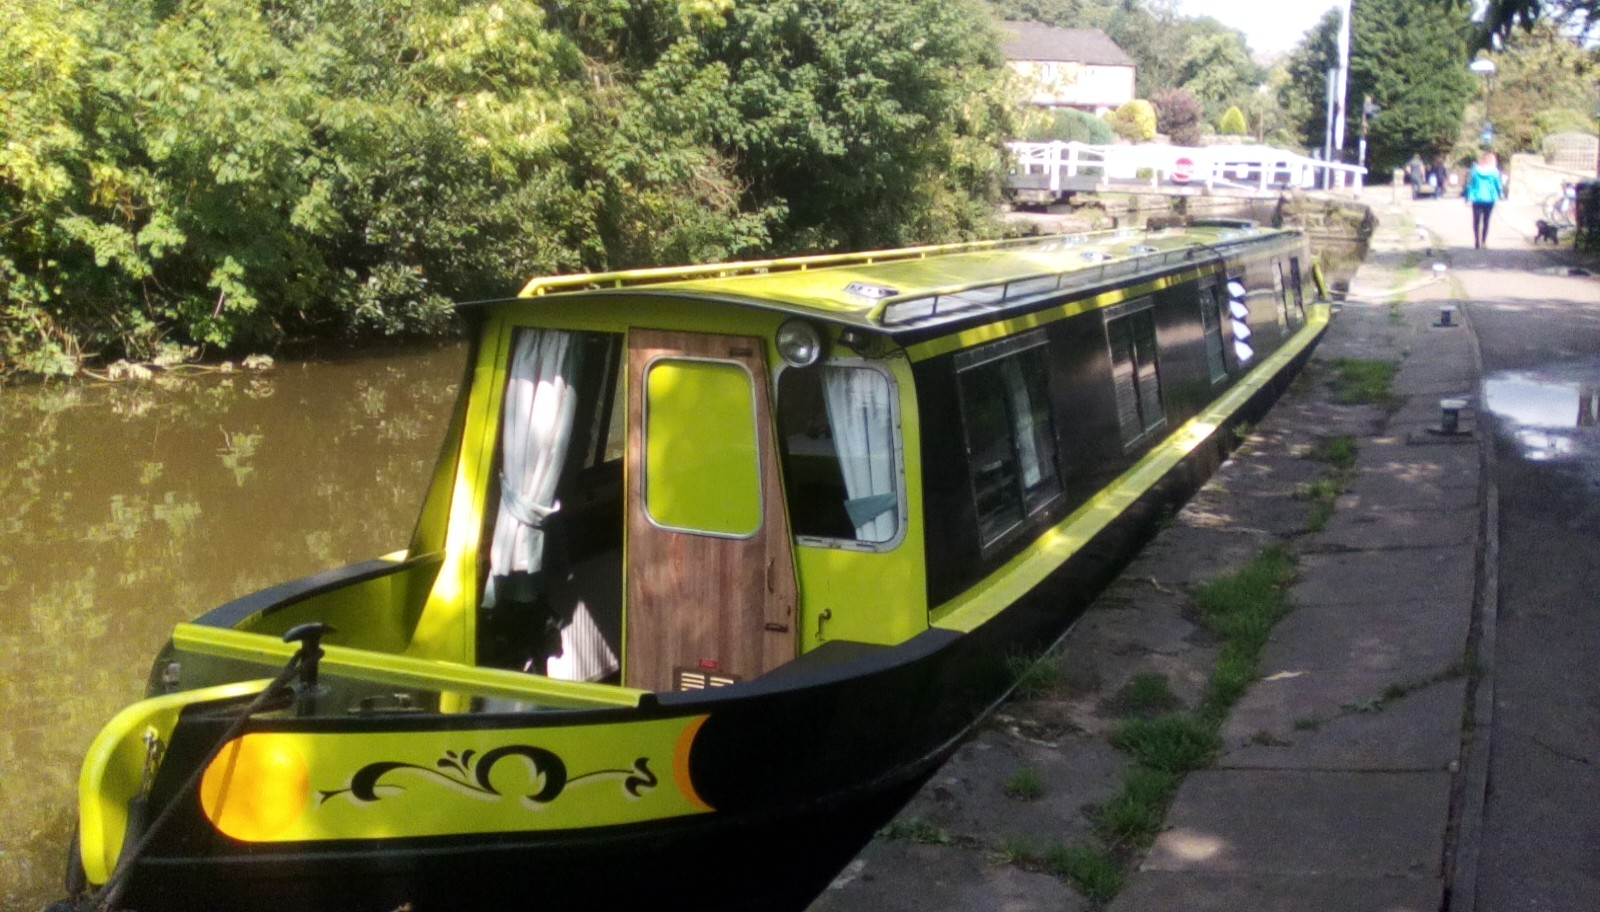 The BELLE class canal boat